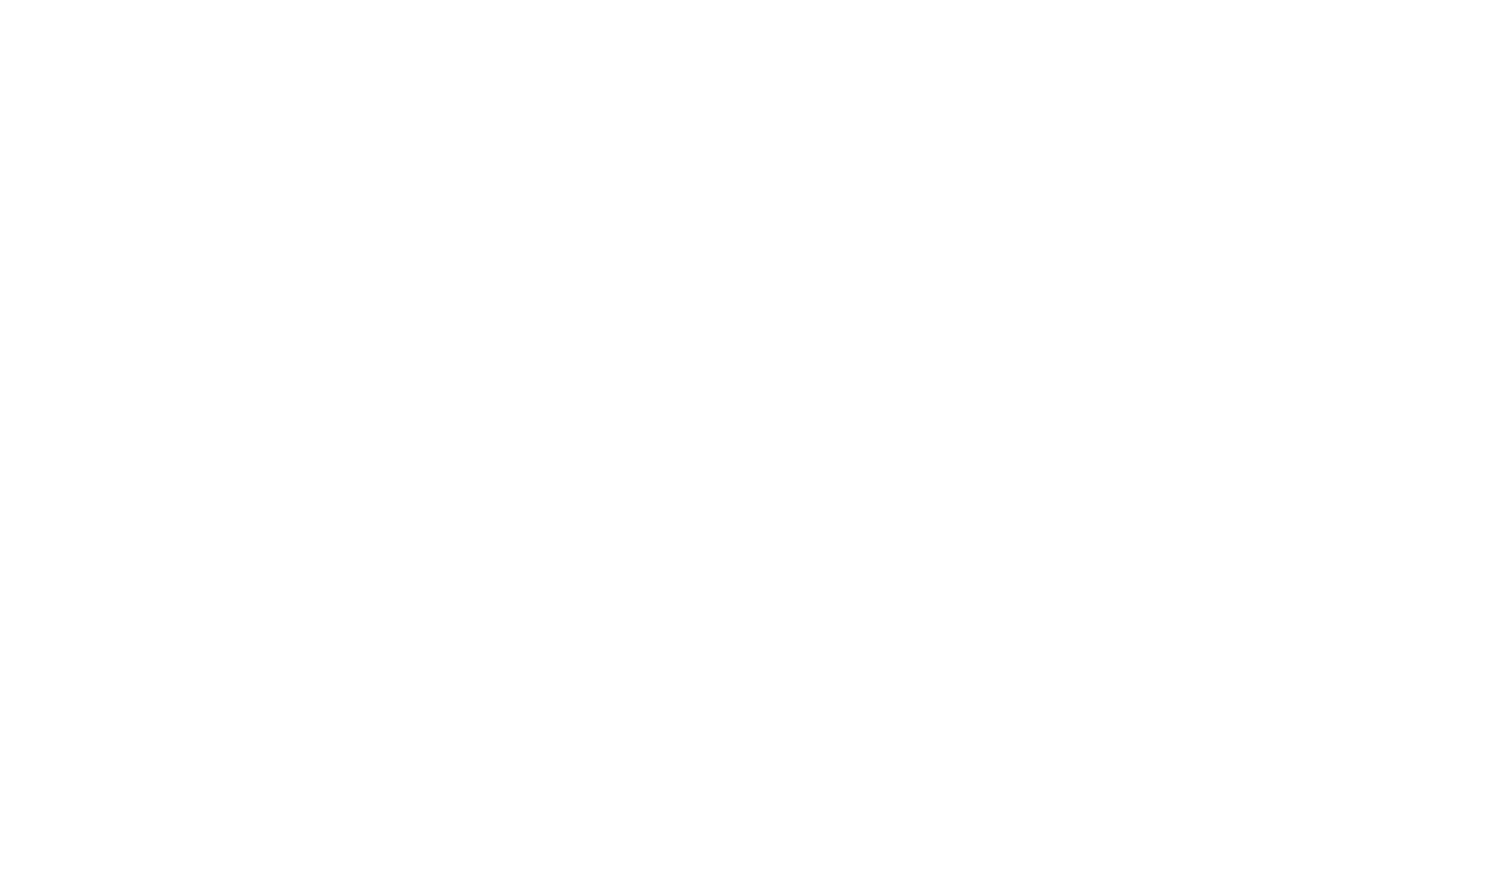 J&R Tile, Inc.